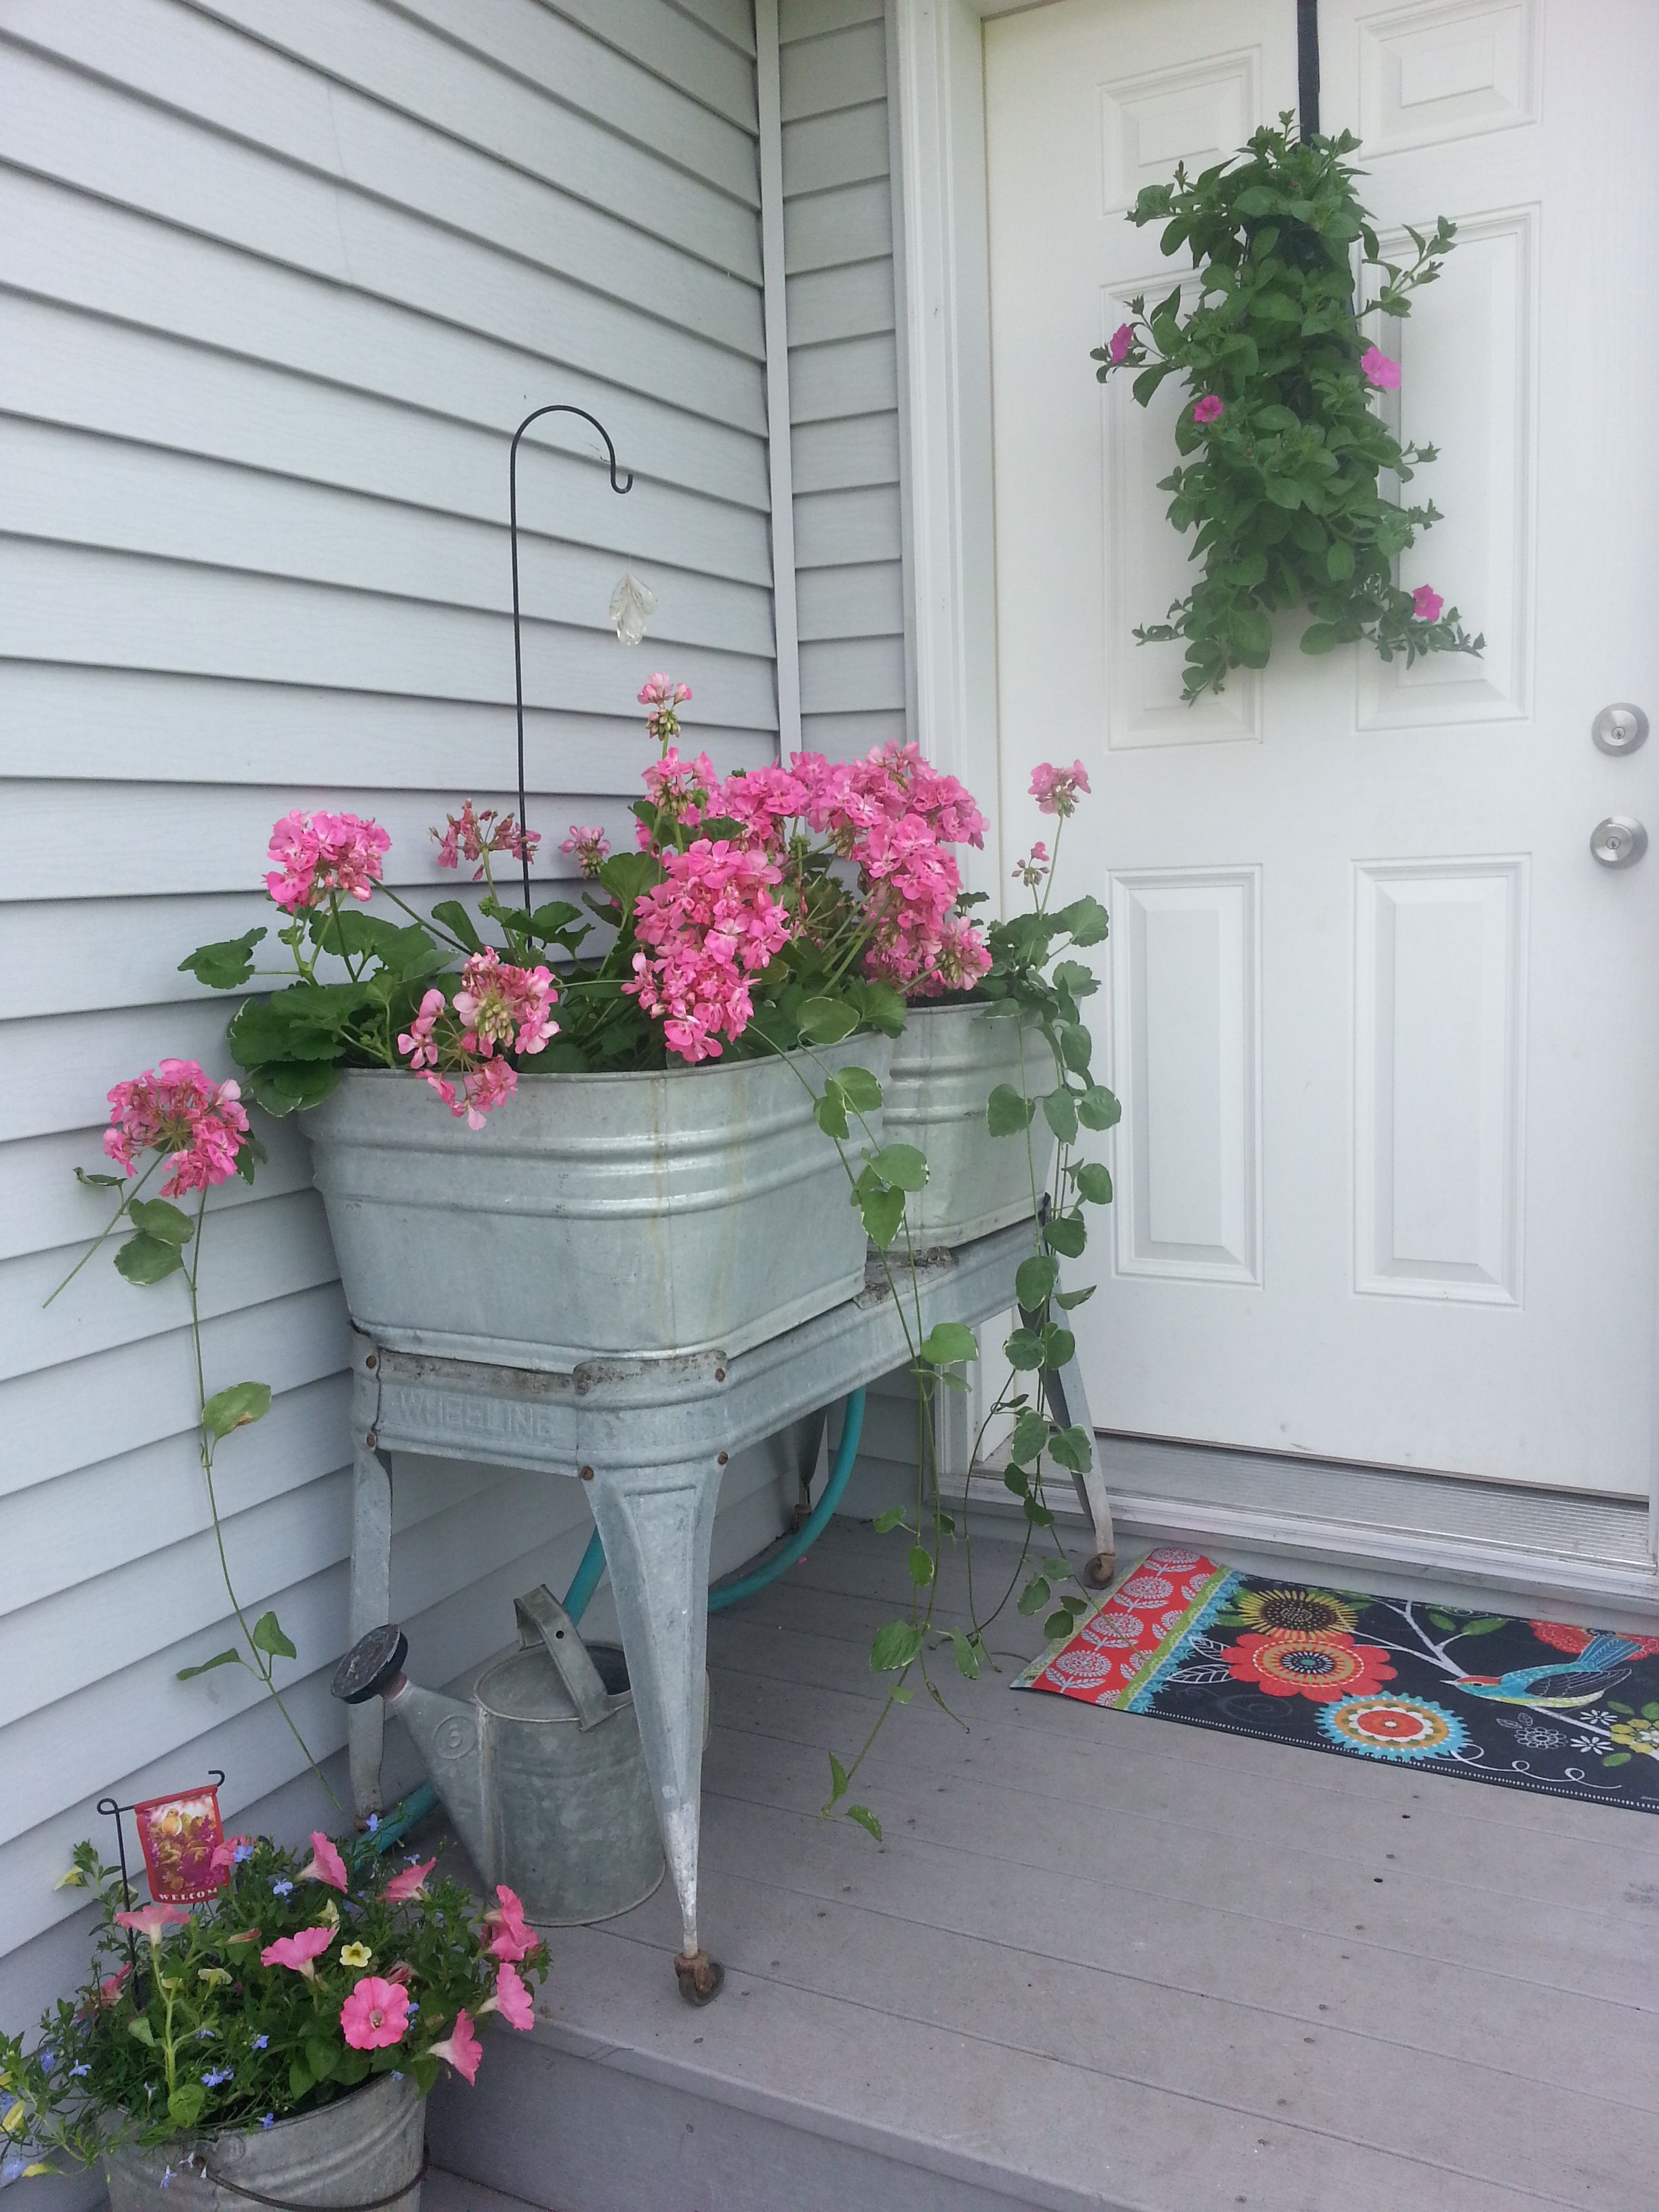 My Front Porch Decorated With Vintage Wash Tubs And Galvanized Buckets Of Flowers Summer Porch Decor Front Porch Decorating Container Garden Design